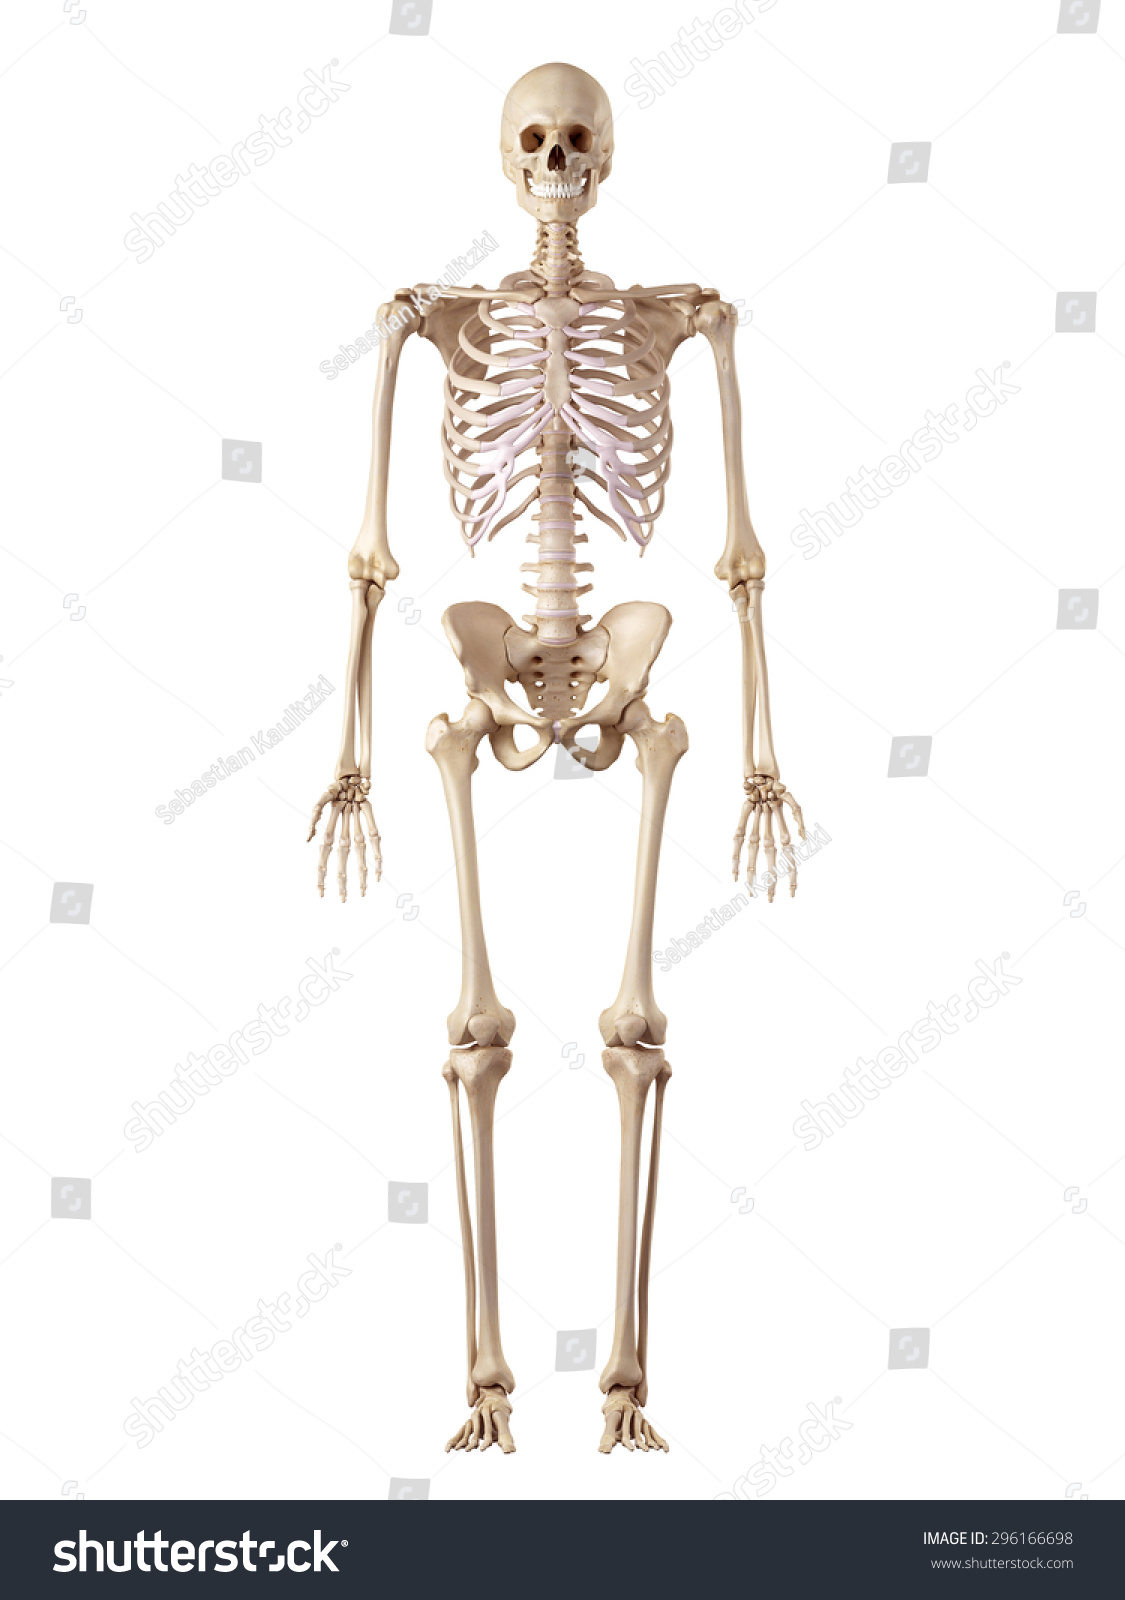 Medical Accurate Illustration Human Skeleton Stock Illustration